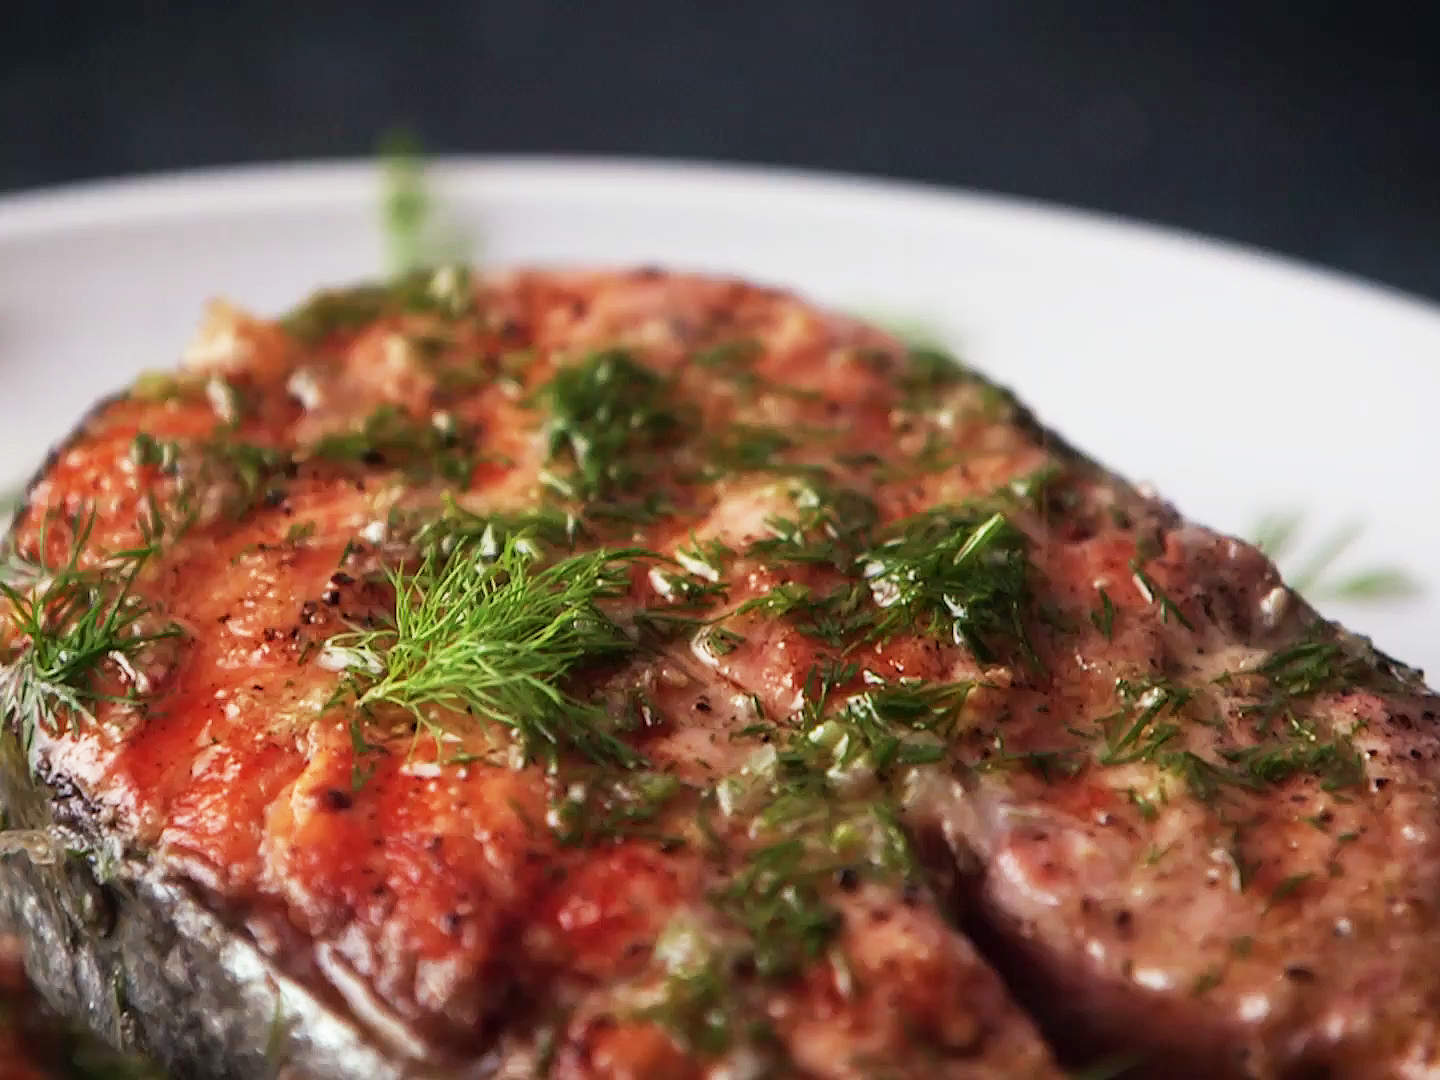 salmon-steak-with-horseradish-vinaigrette-video